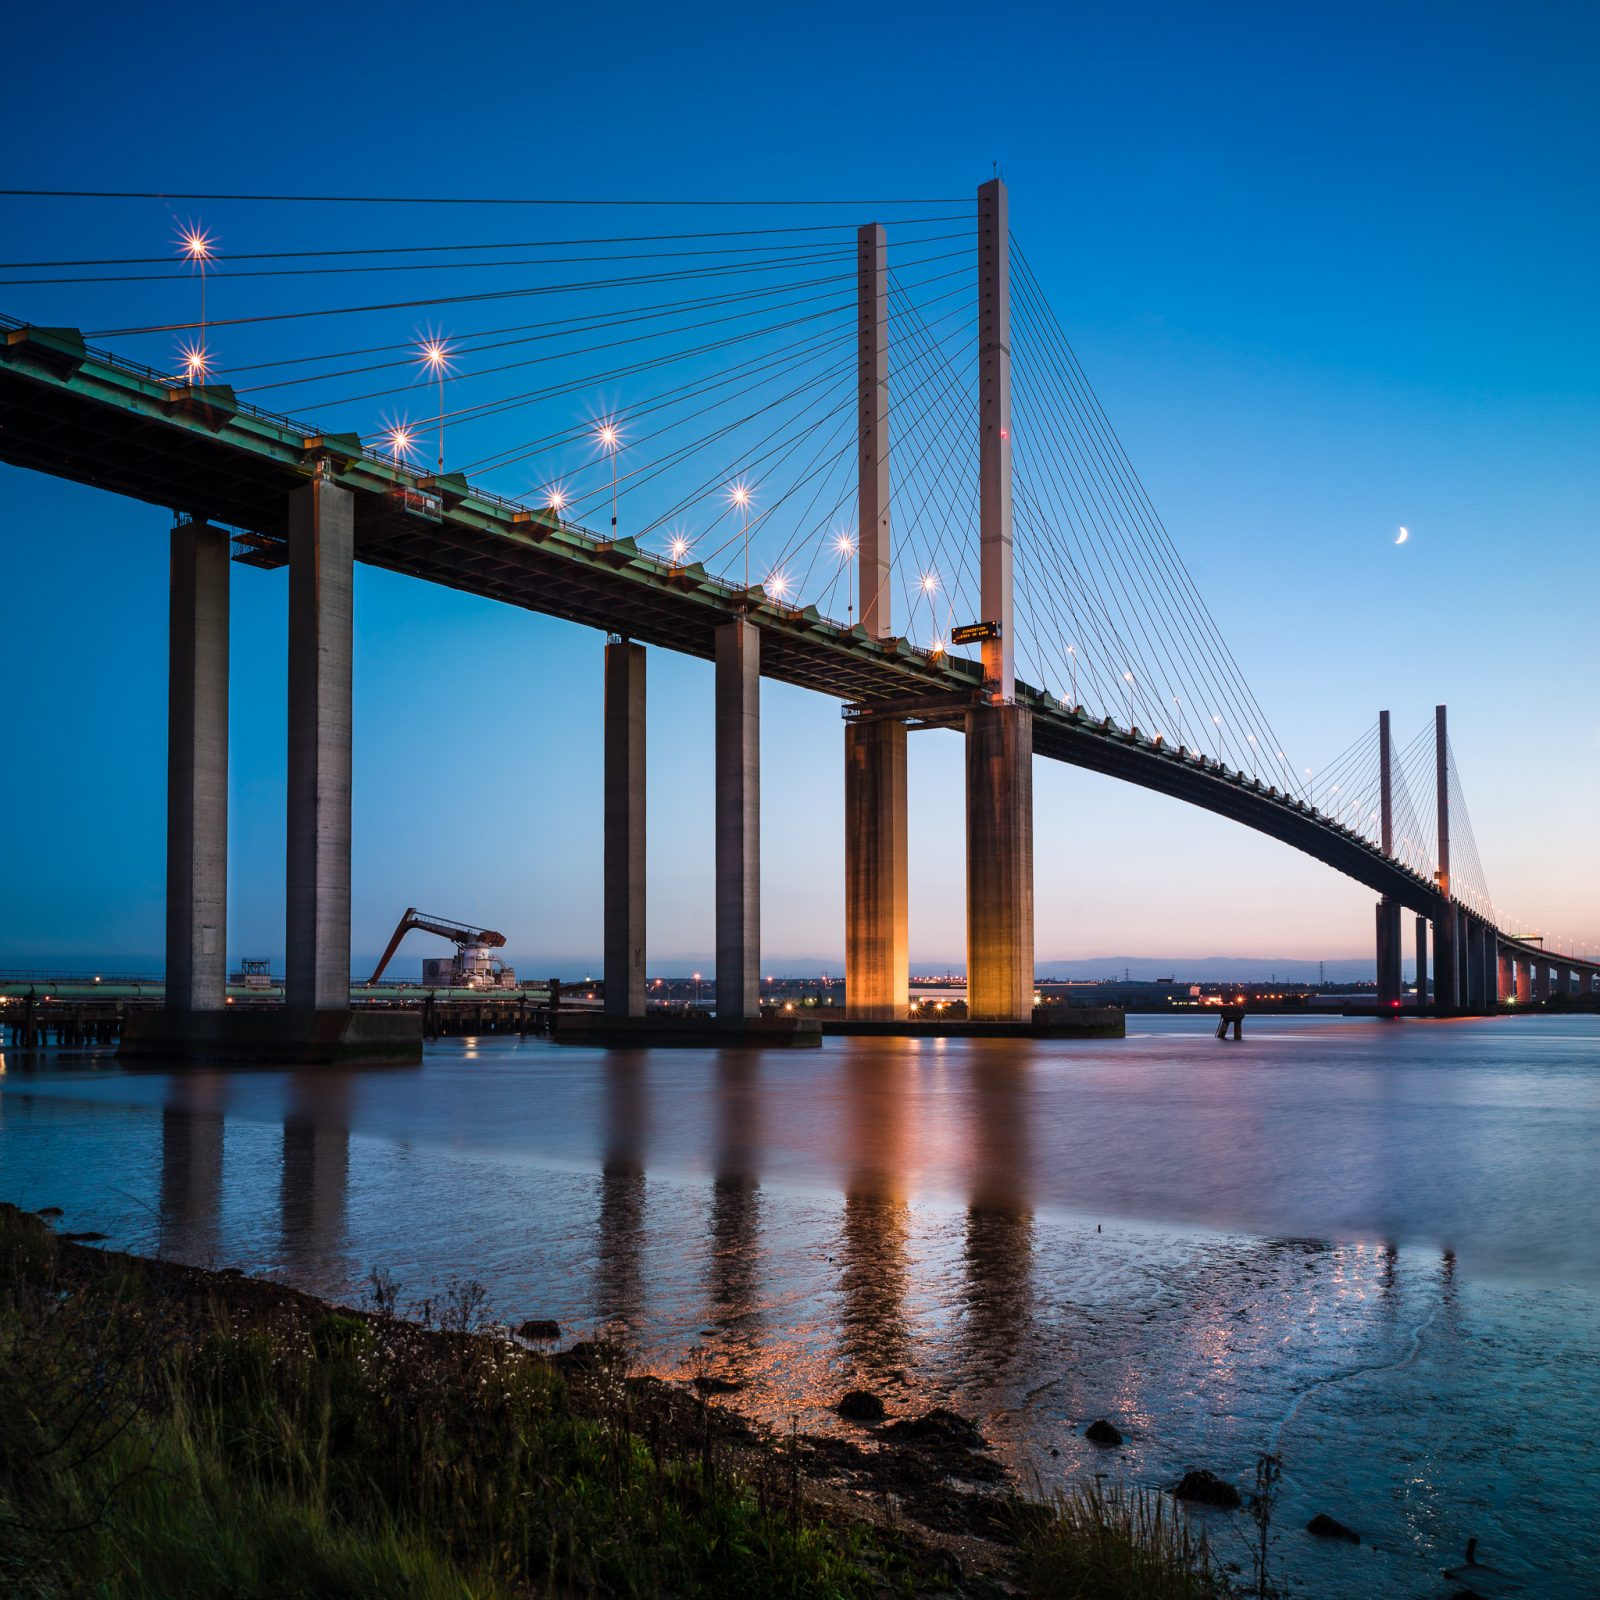 Dartford River Crossing, QEii Bridge